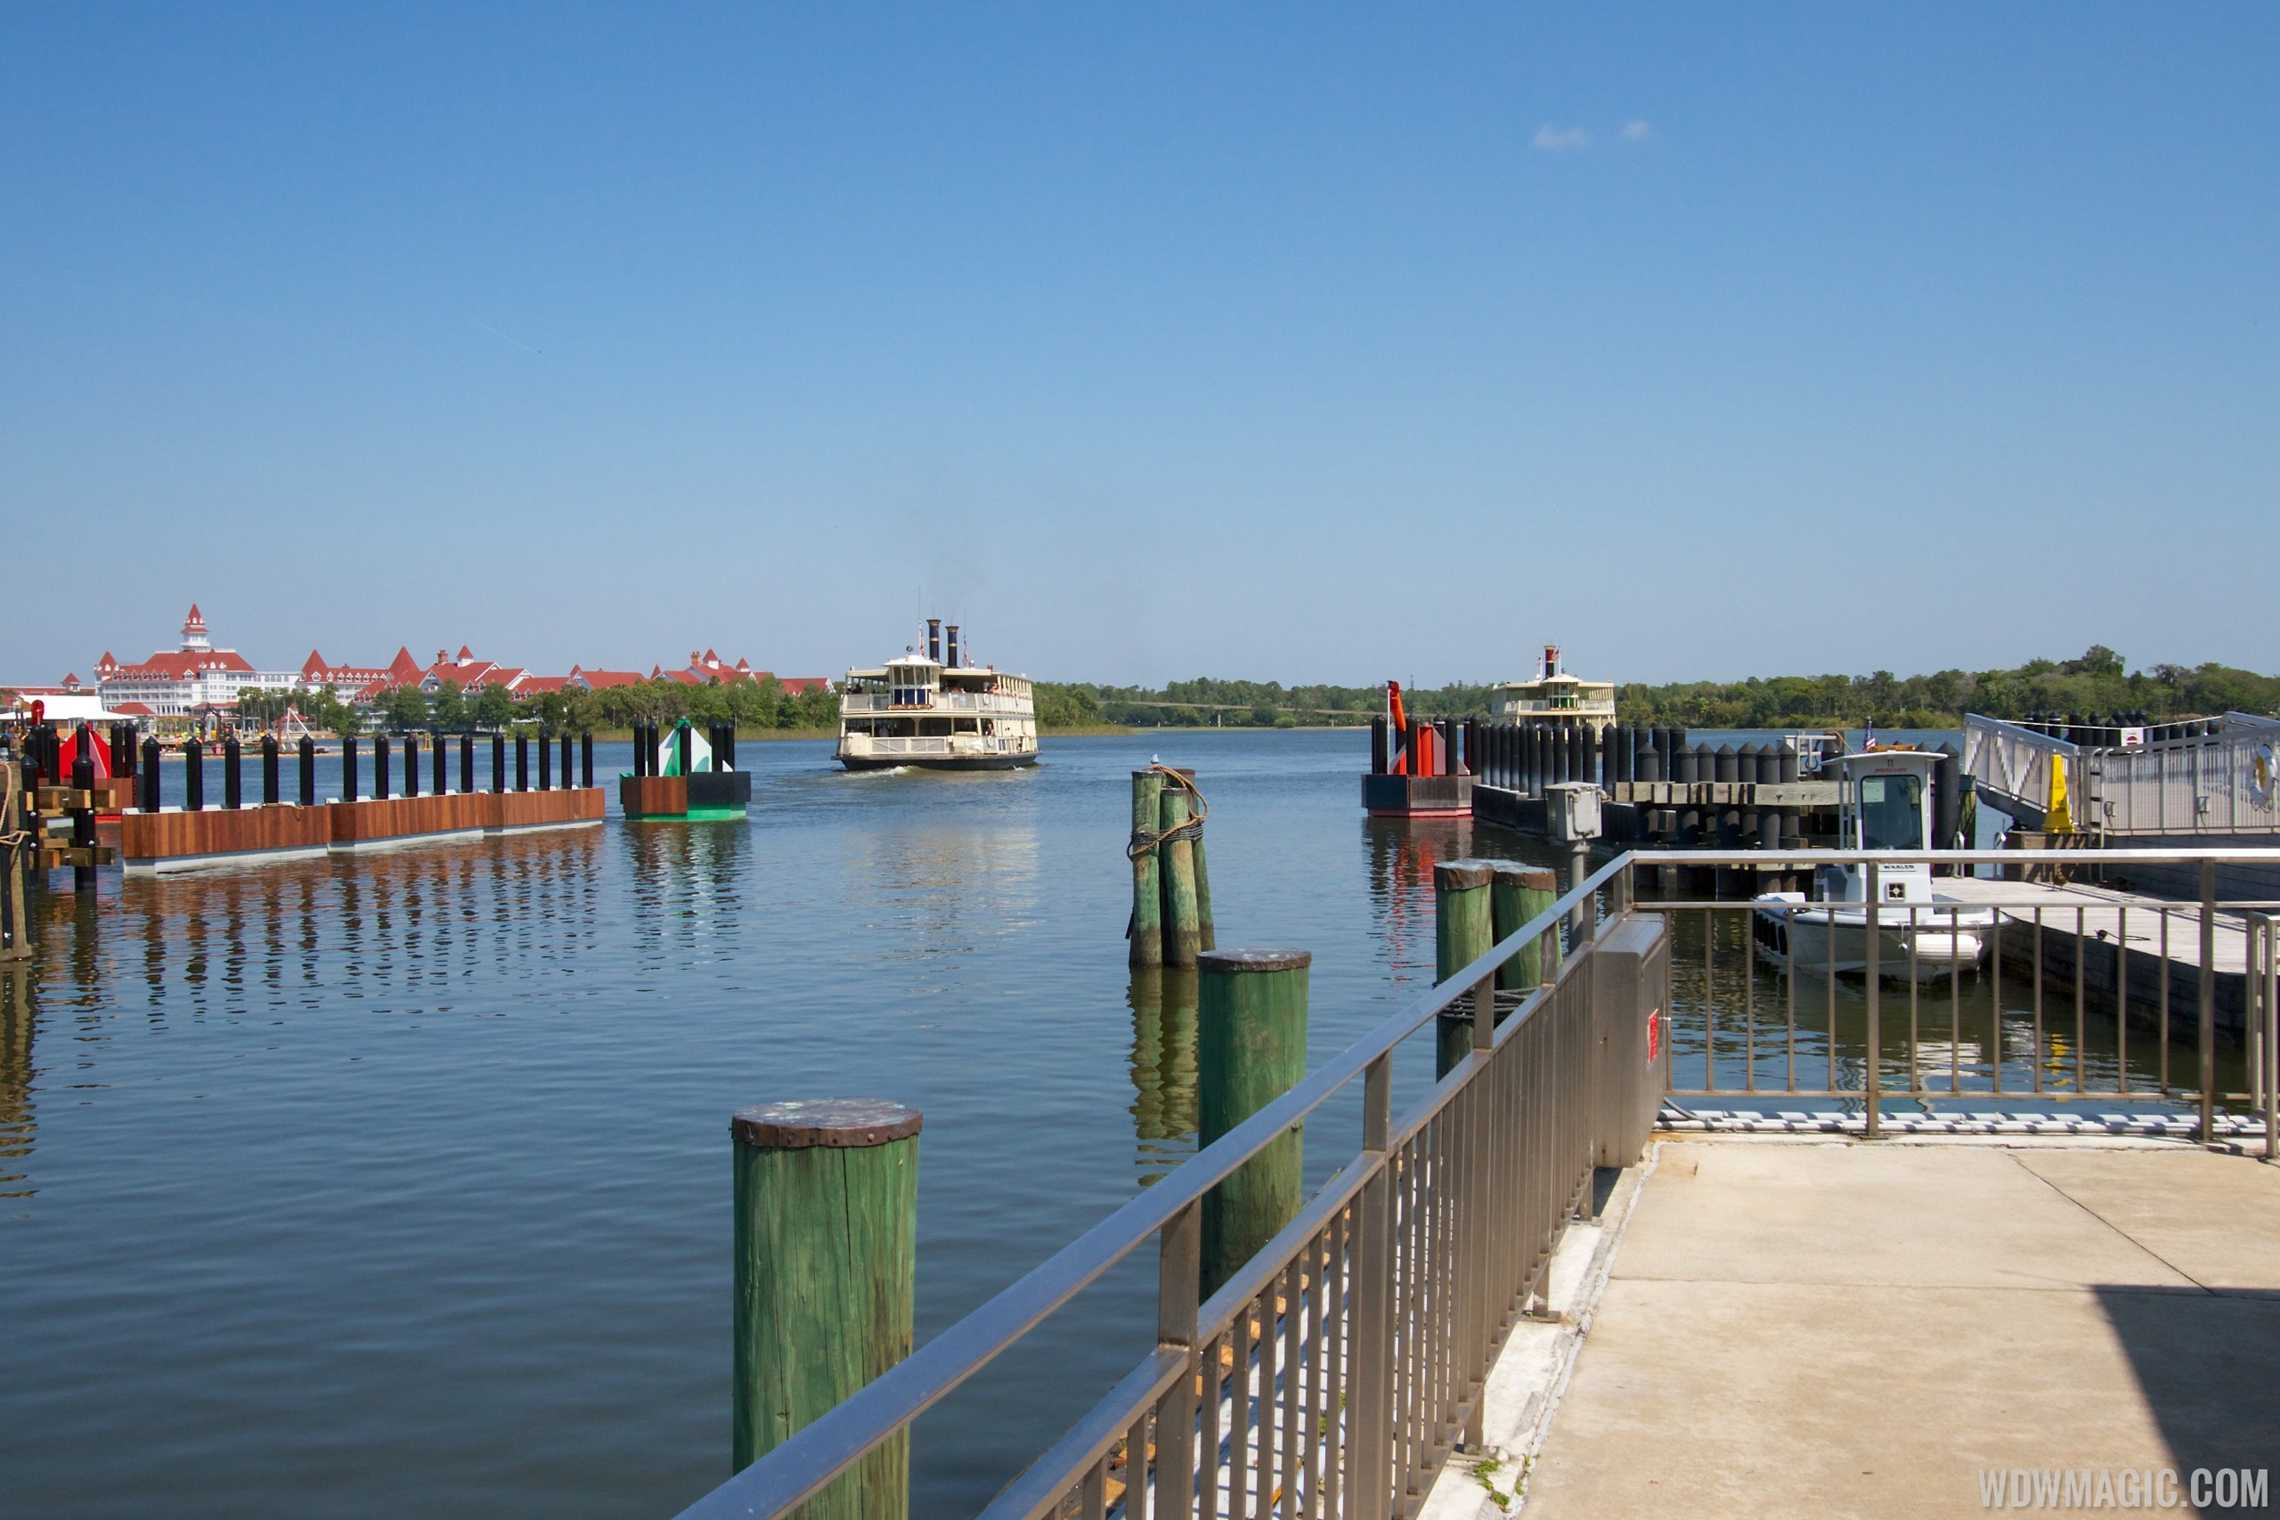 Second boat dock in operation at the TTC